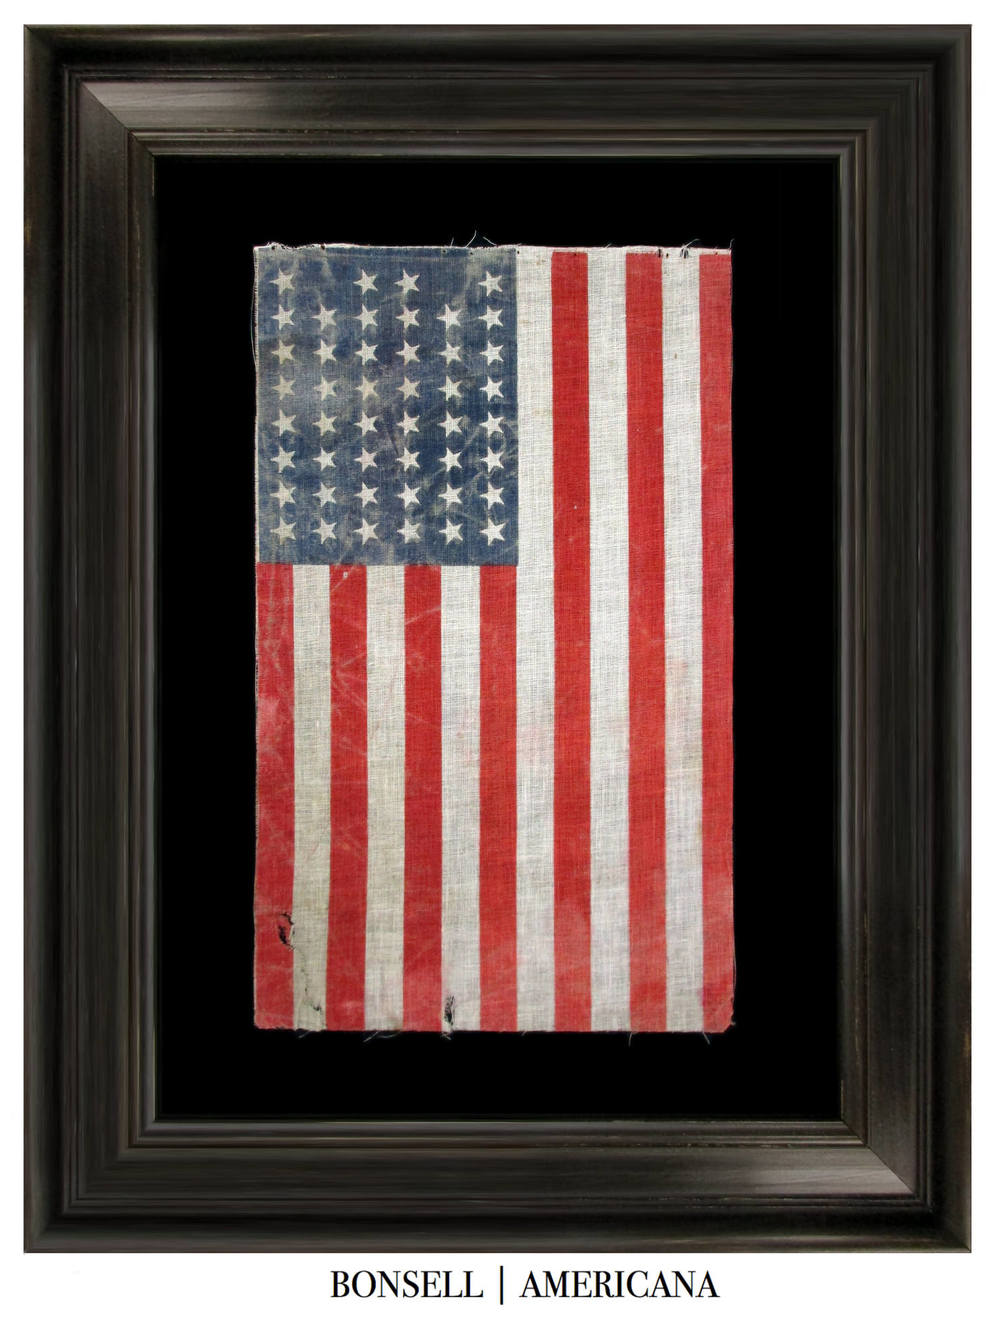 Coming Soon: 46 Star Antique Flag with Notched Star Pattern